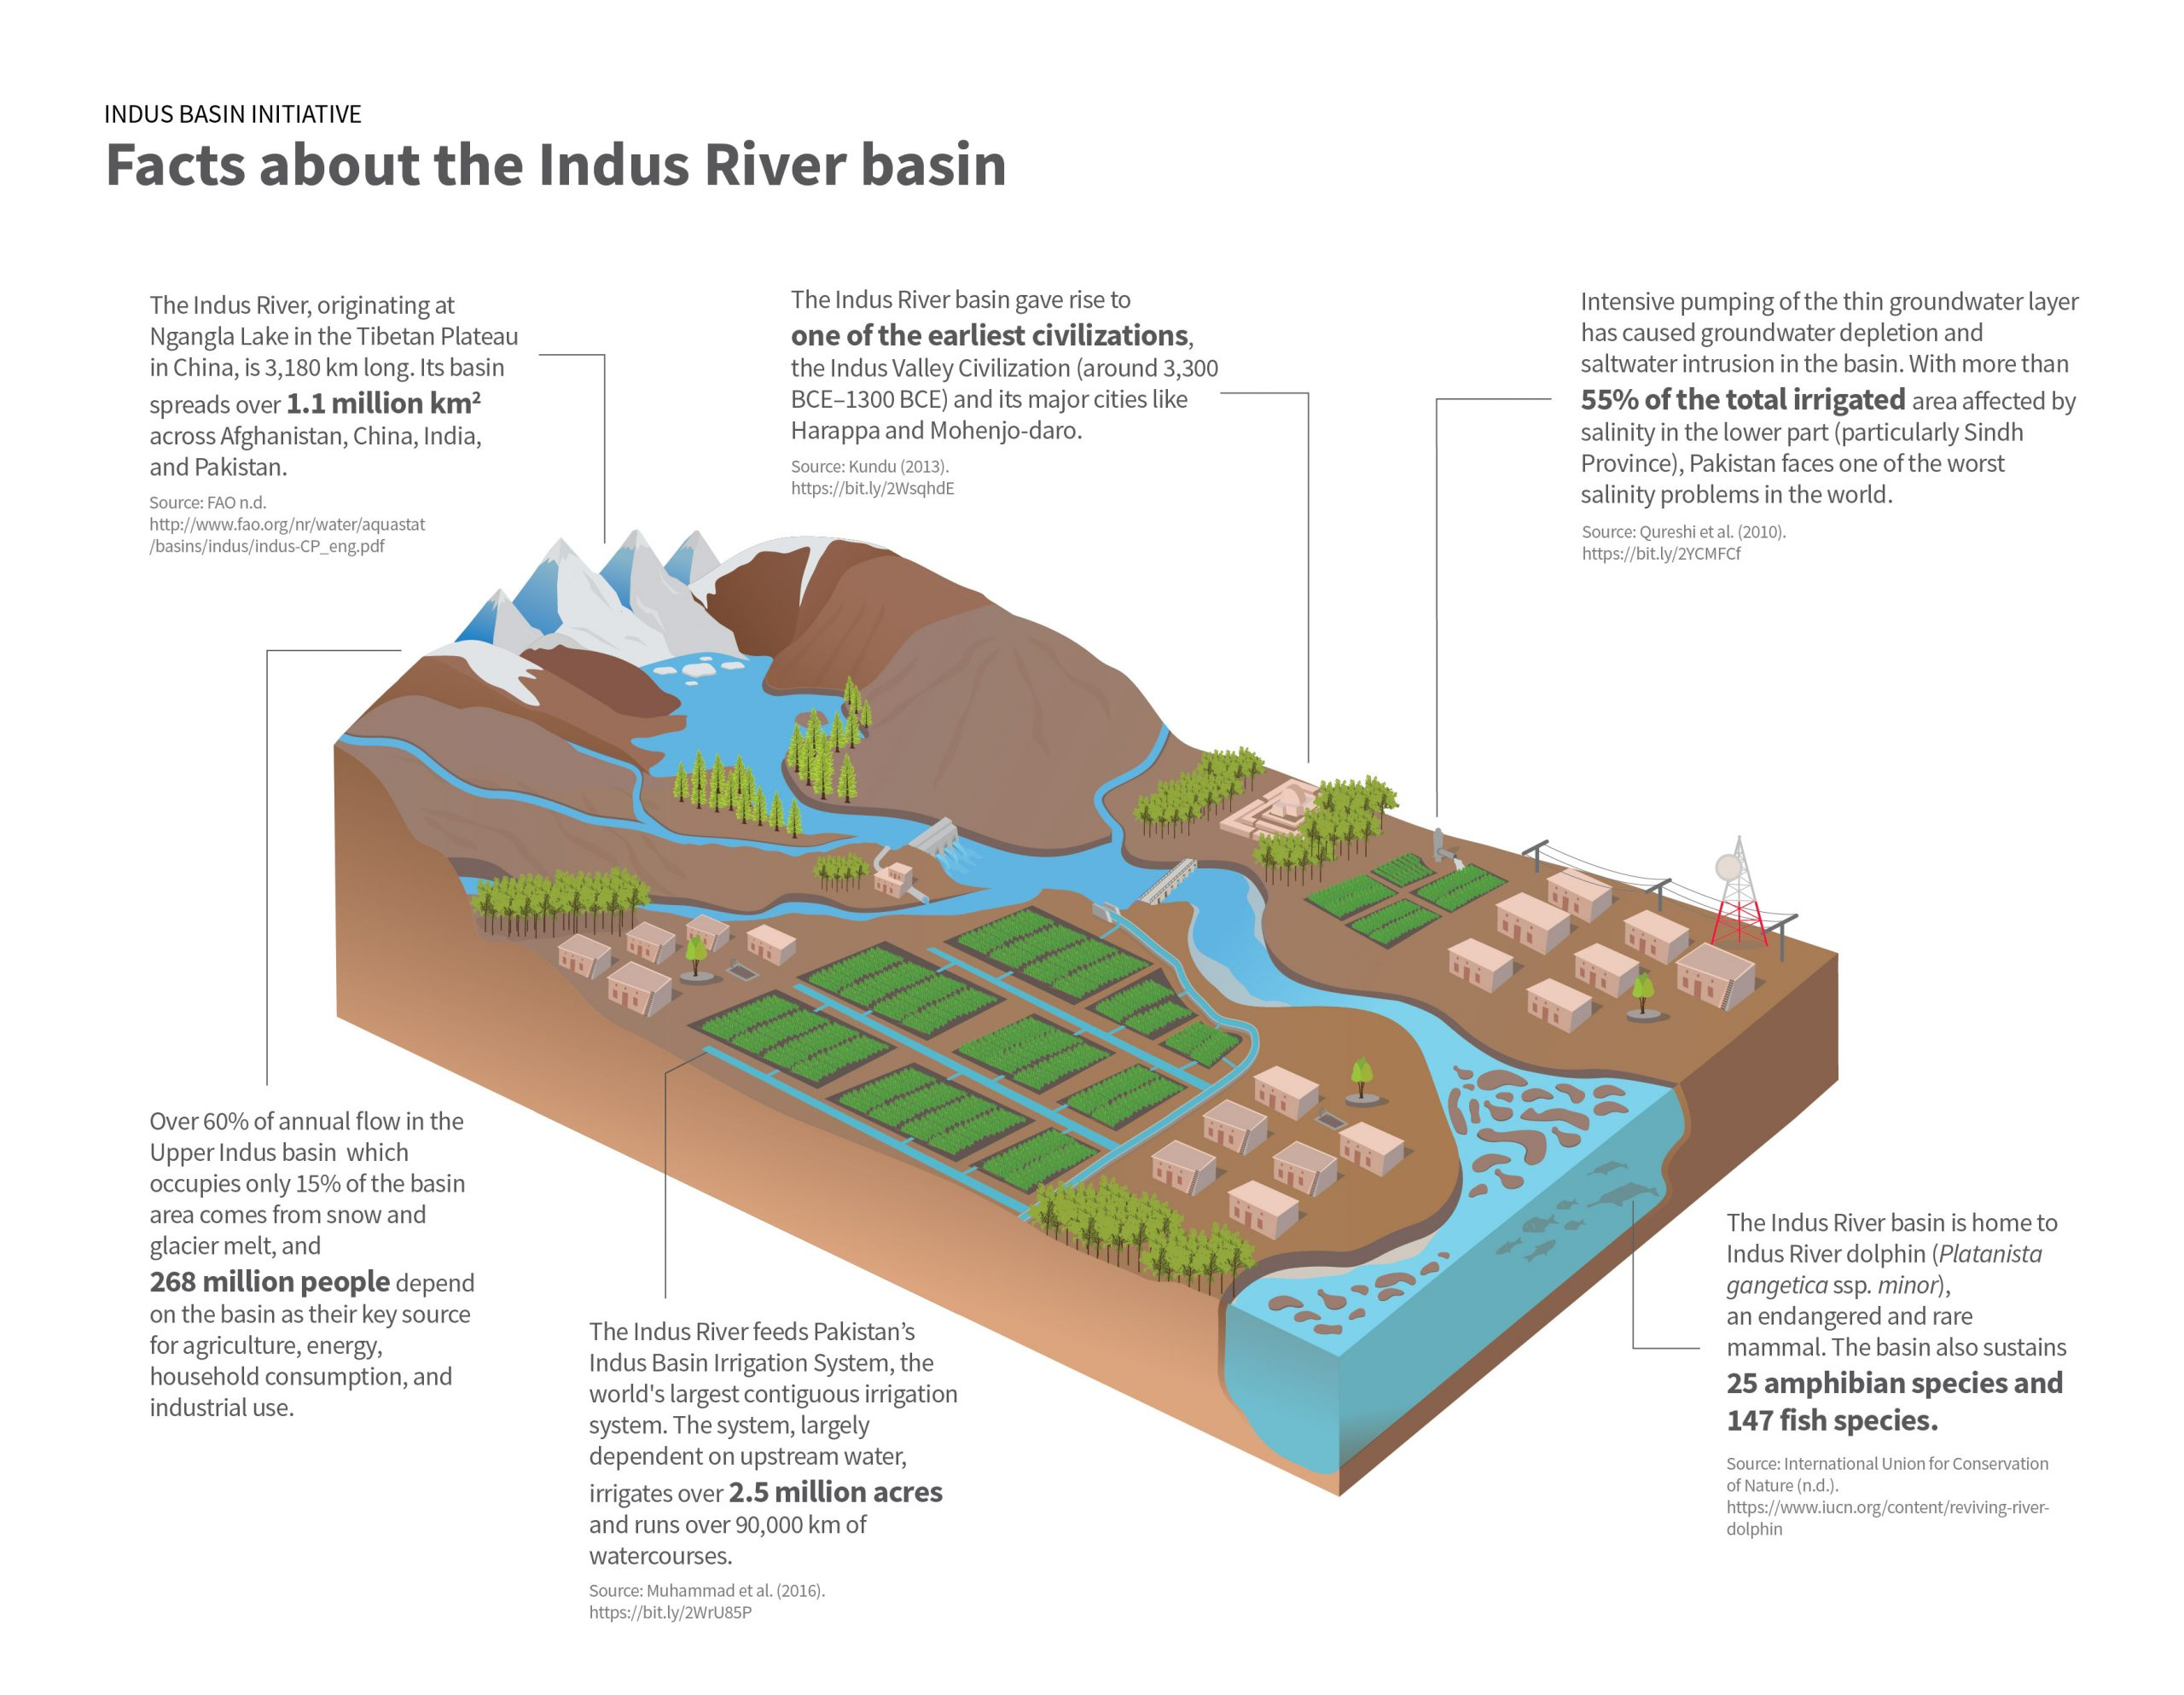 facts about indus river basin